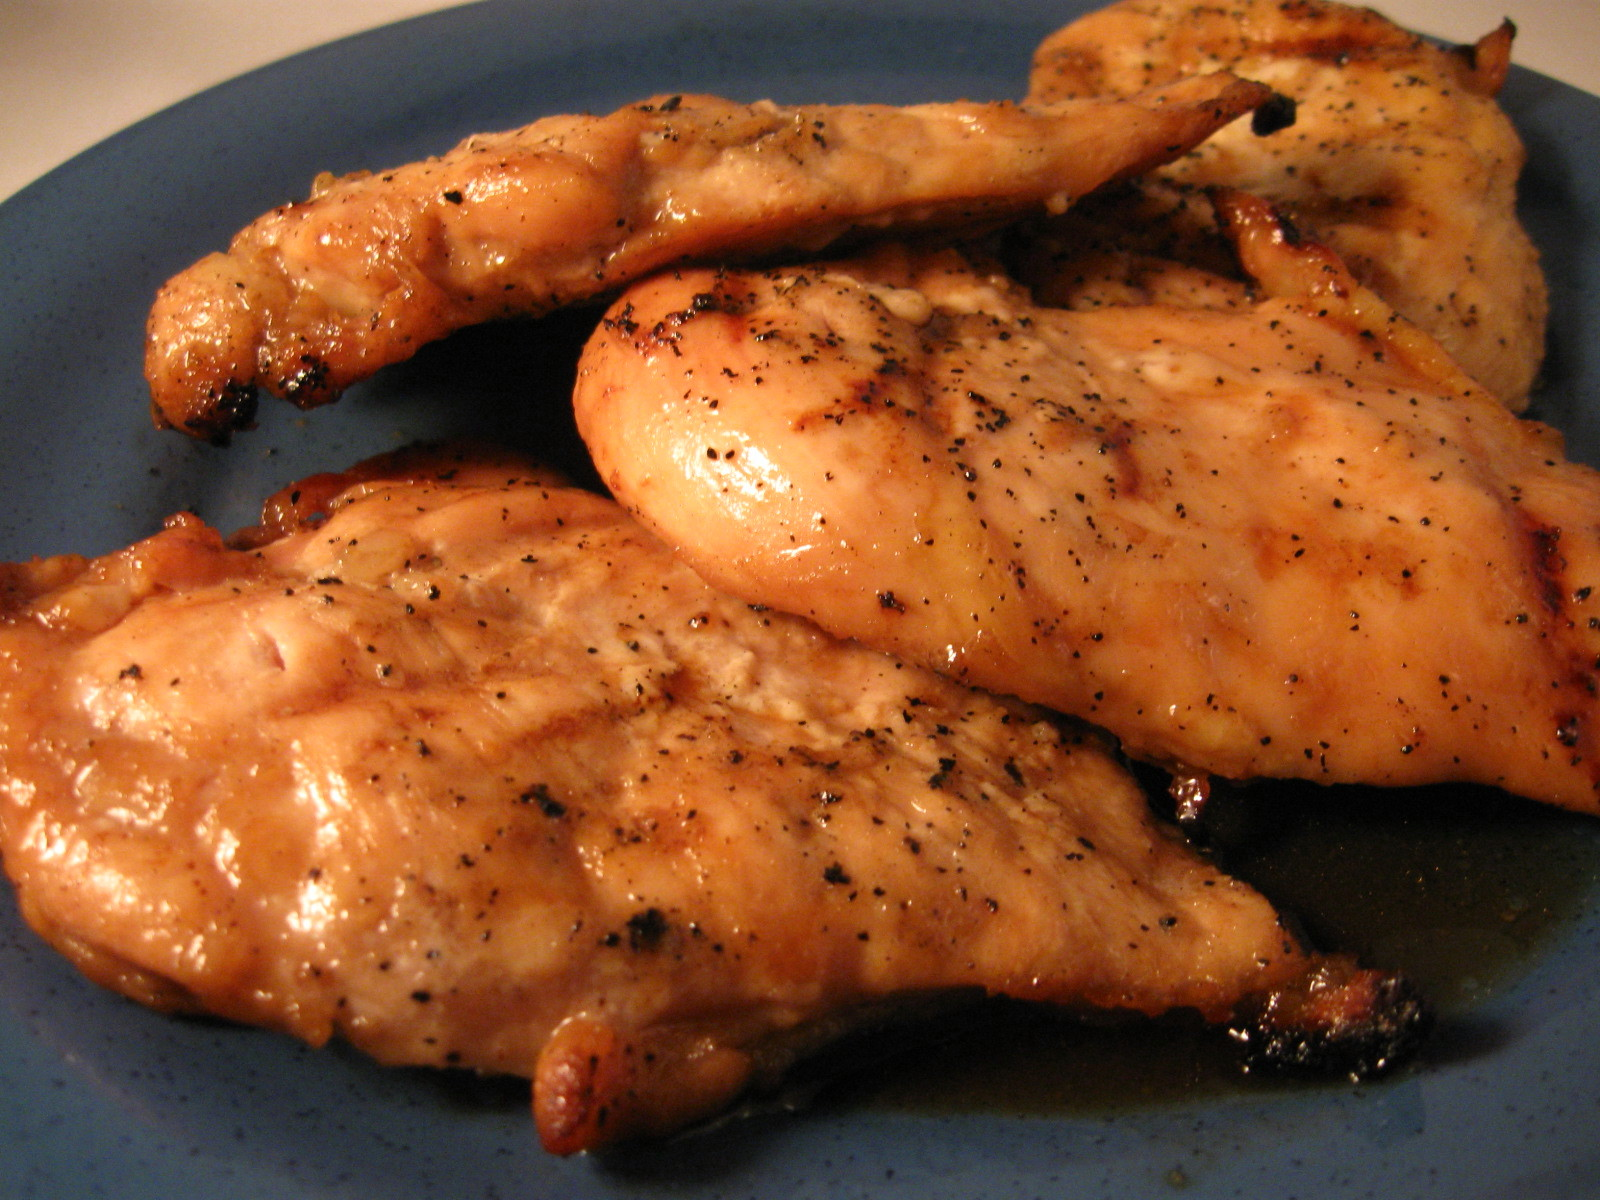 Grilled Maple Barbecue Chicken